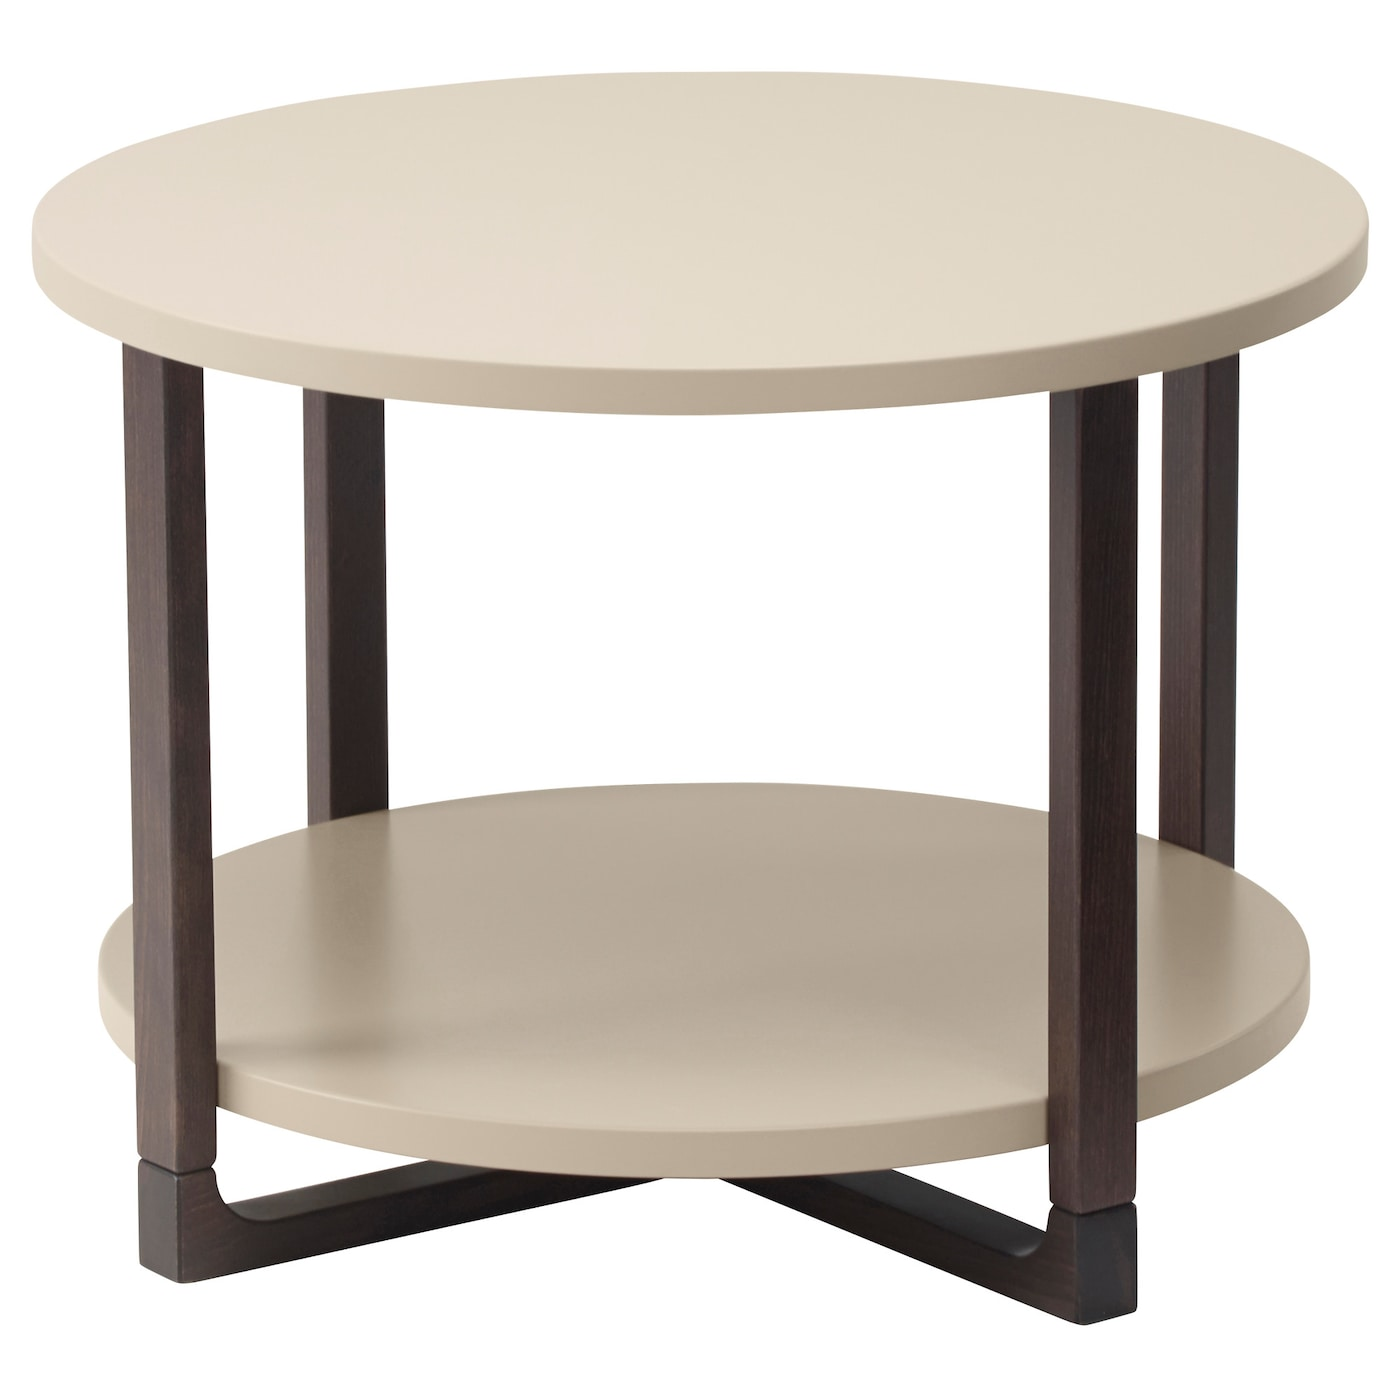 Rissna side table beige 60 cm ikea - Tables rondes avec rallonges ikea ...